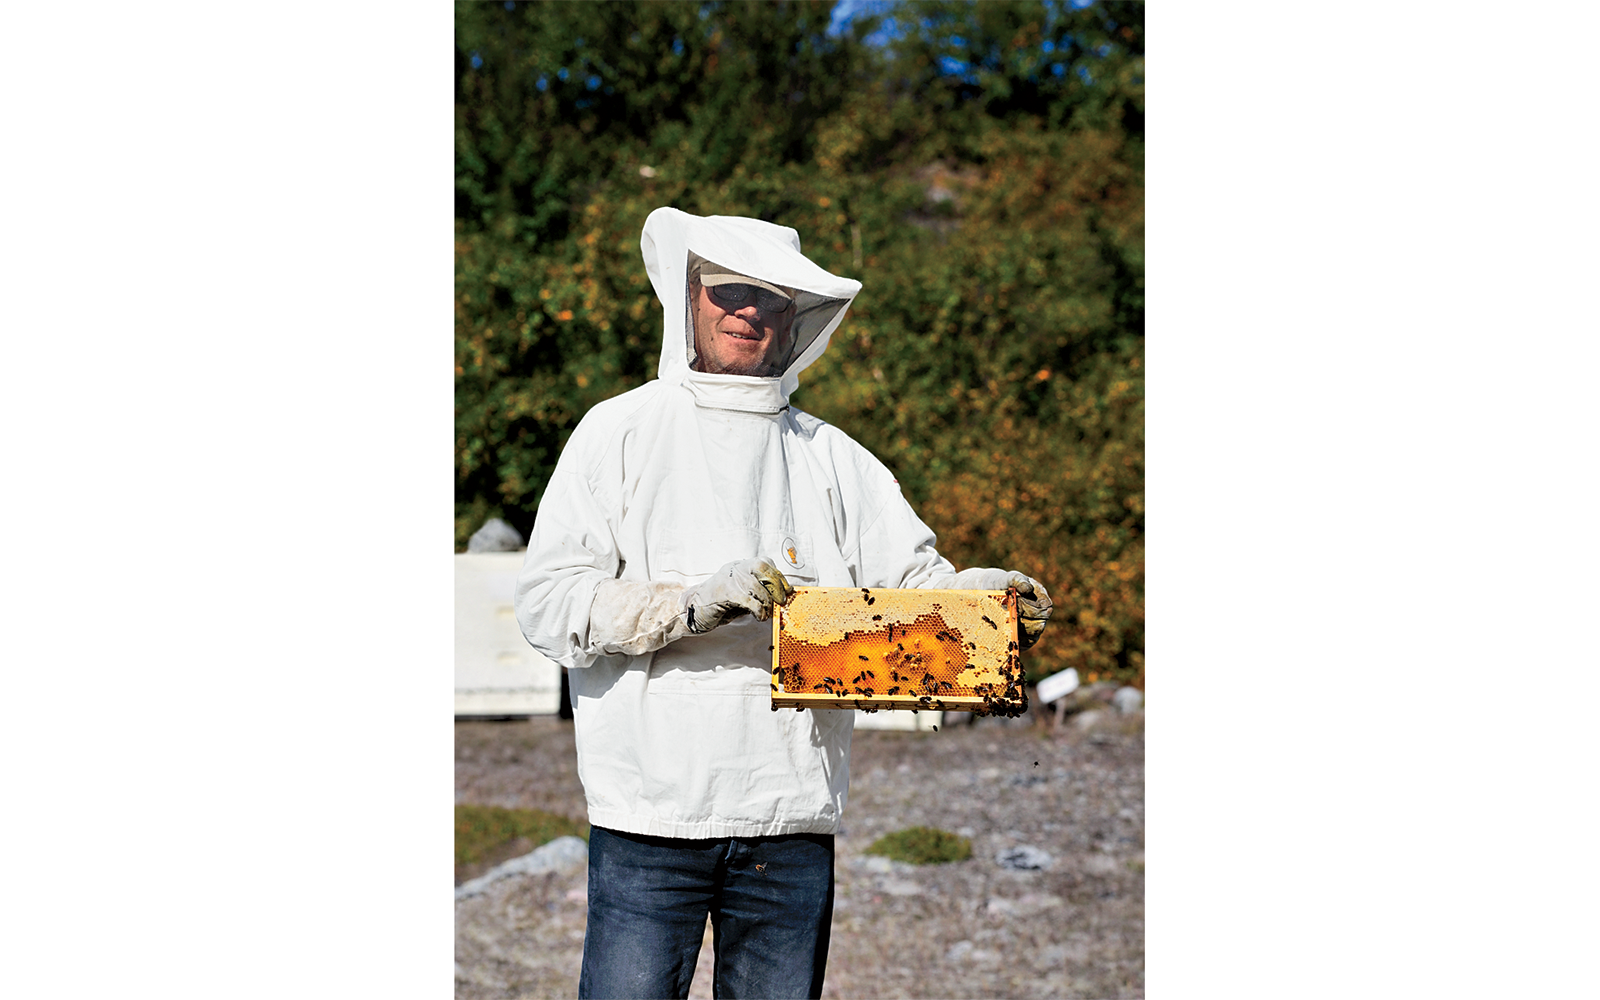 Food in Greenland: Beekeeper